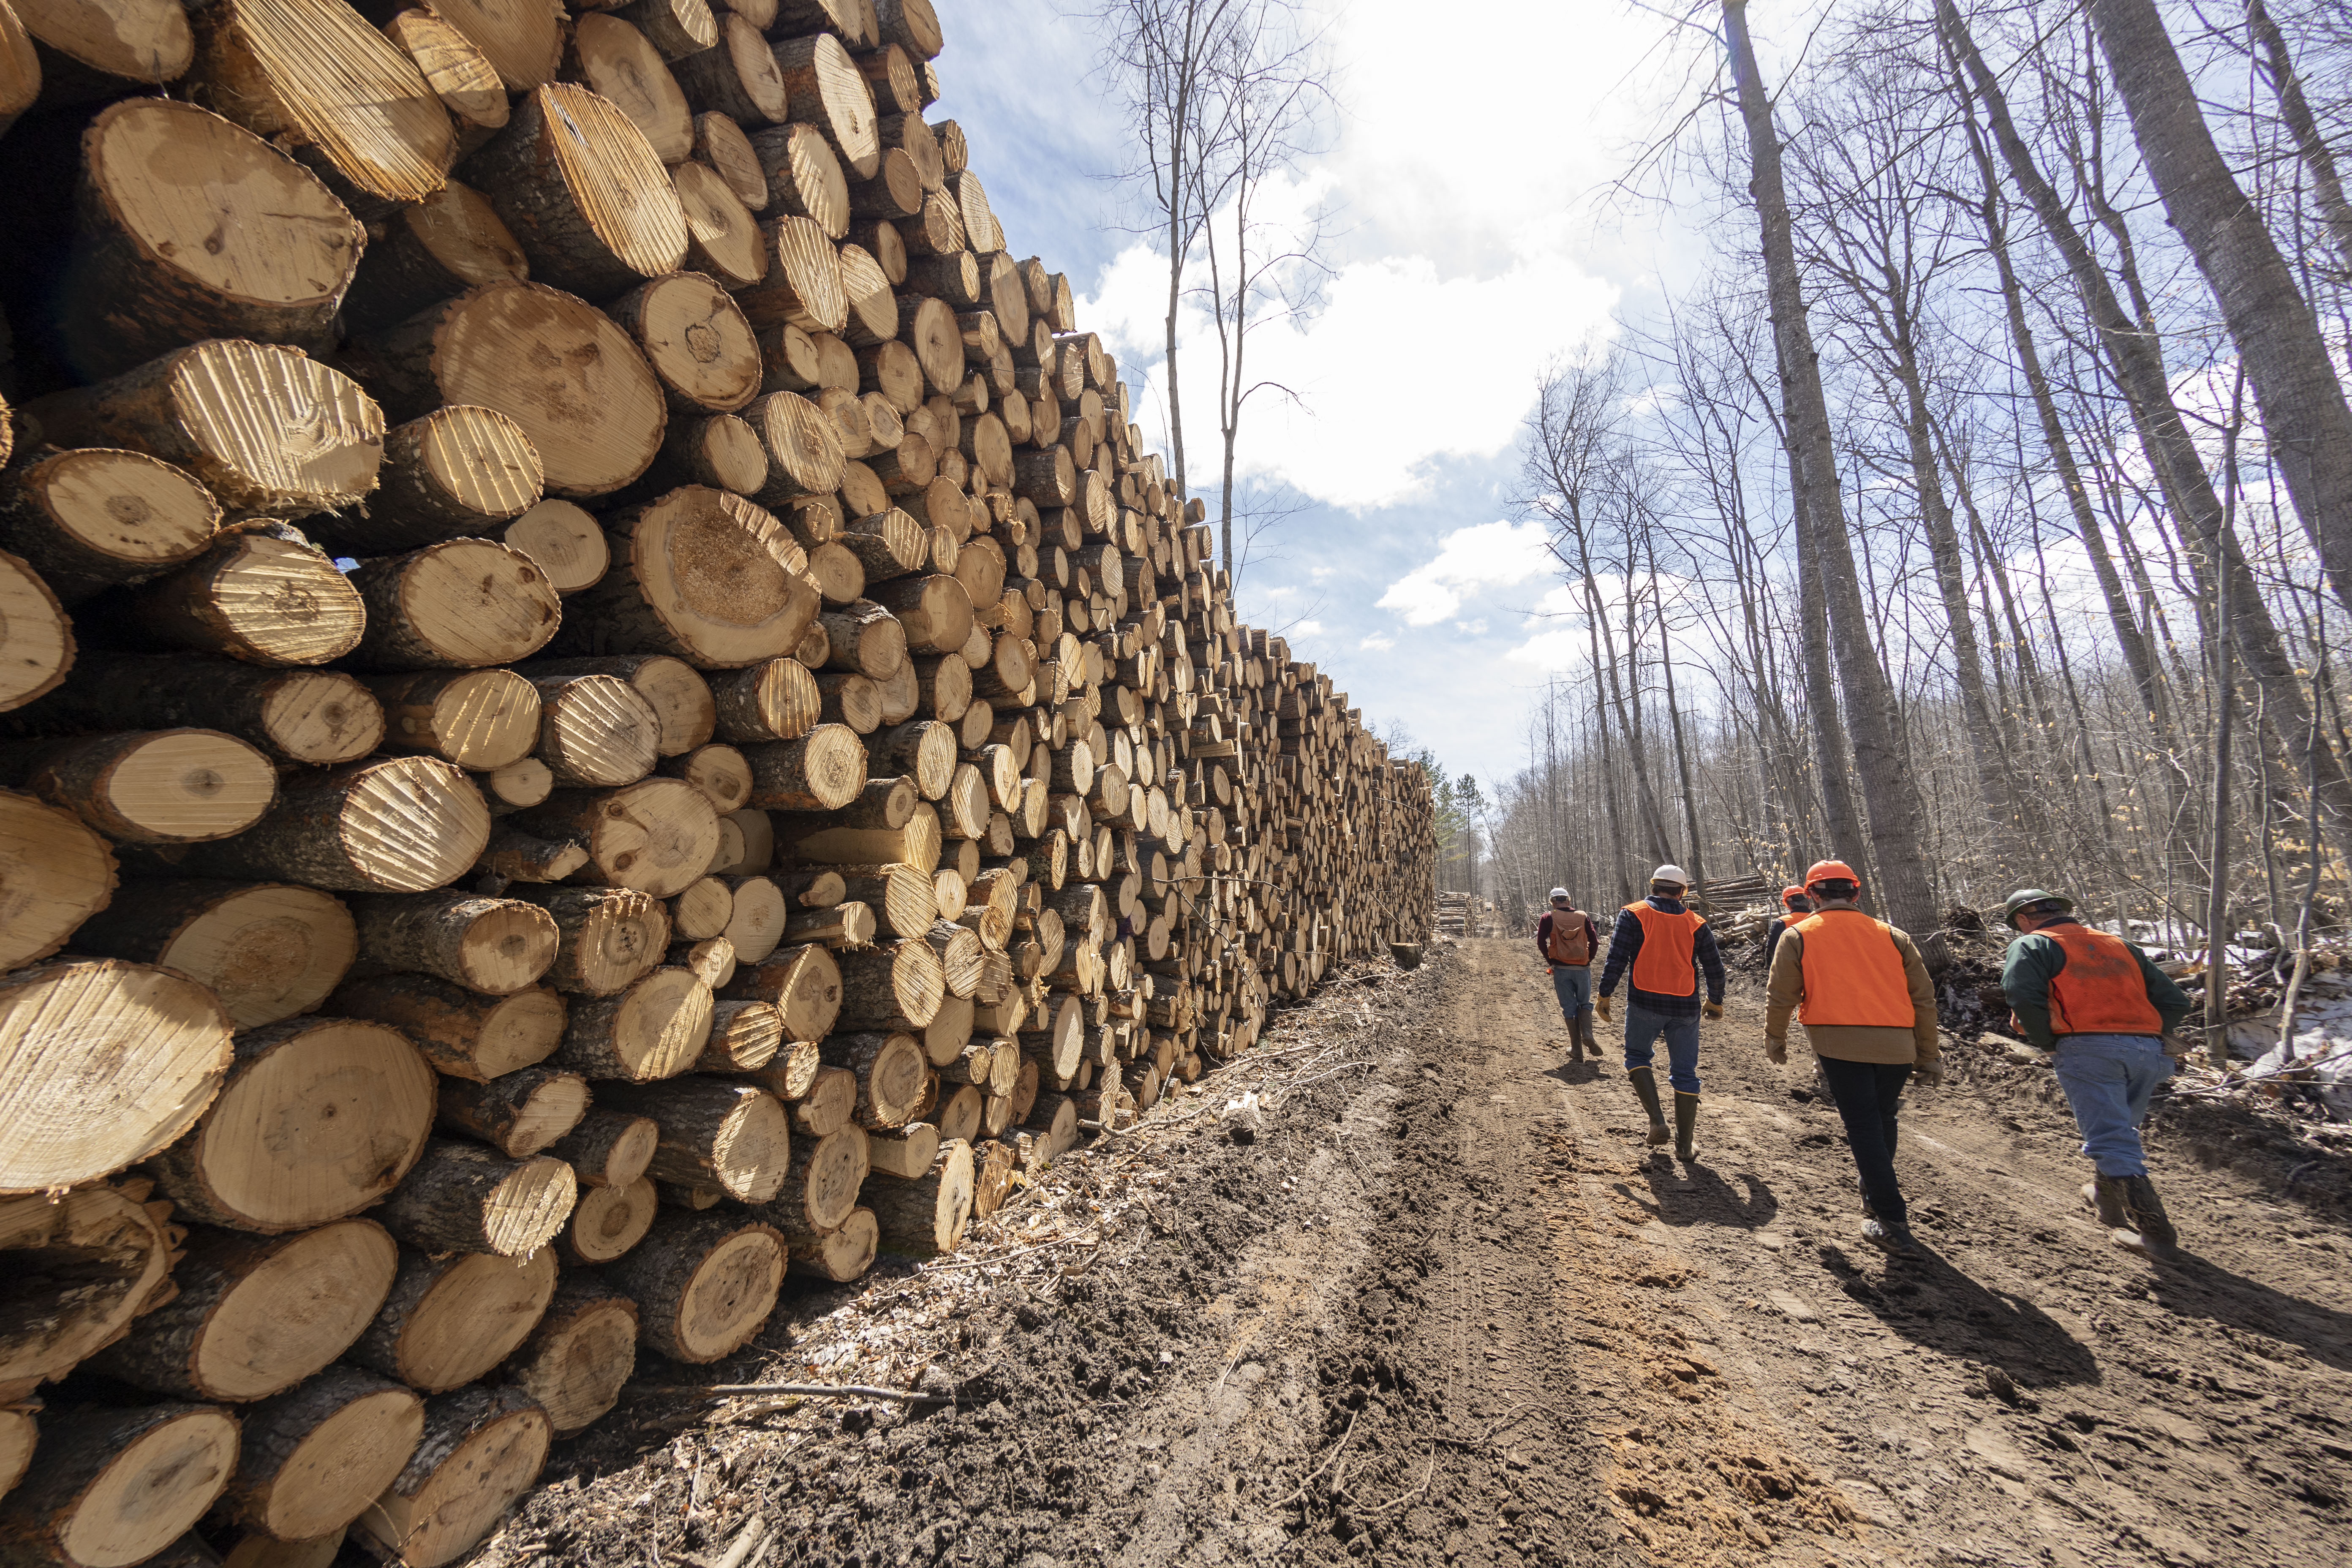 U-M researchers and their colleagues walk past a stack of bigtooth aspen logs cut as part of the UMBS Adaptive Aspen Management Experiment at the U-M Biological Station, near the northern tip of Michigan's Lower Peninsula. Image credit: Roger Hart, University of Michigan Photography